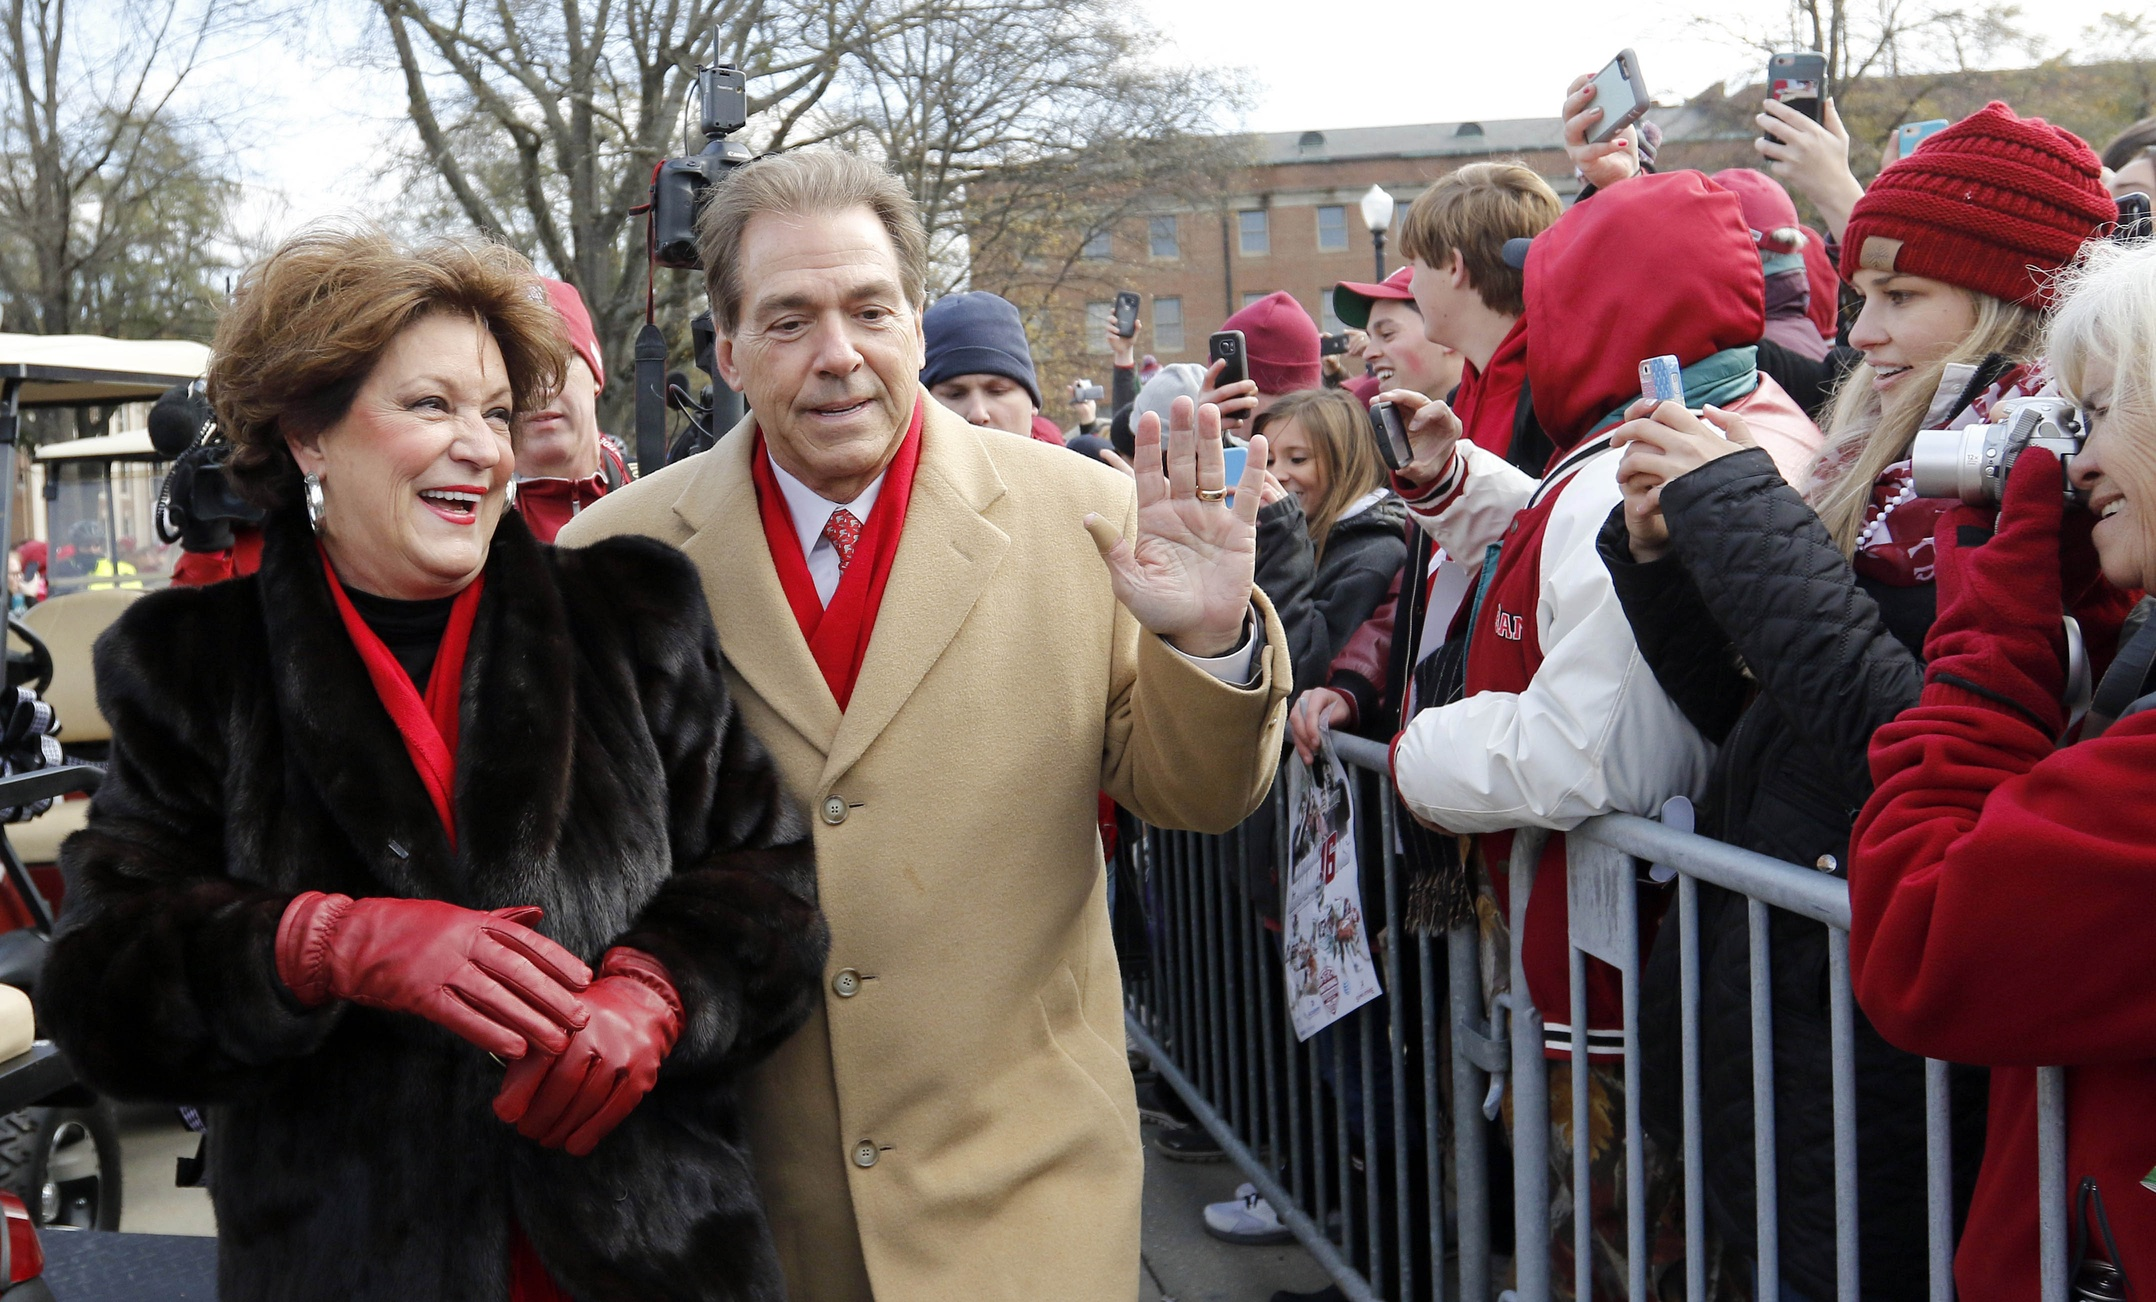 Nick Saban Wife To Open Mercedes Benz Dealership In Nashville